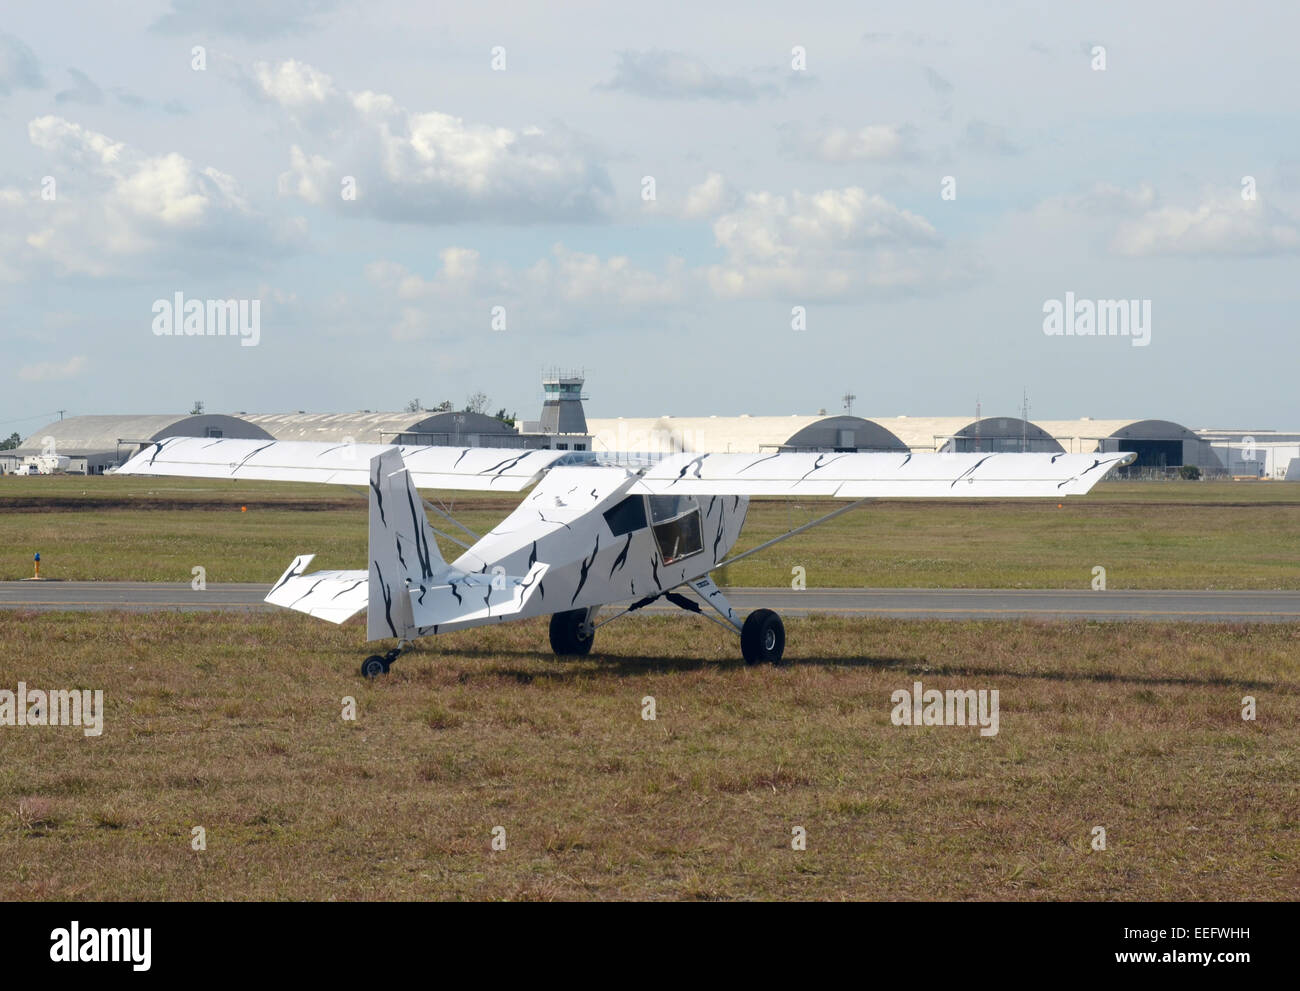 Light private airplane taxiing on the ground rear view - Stock Image